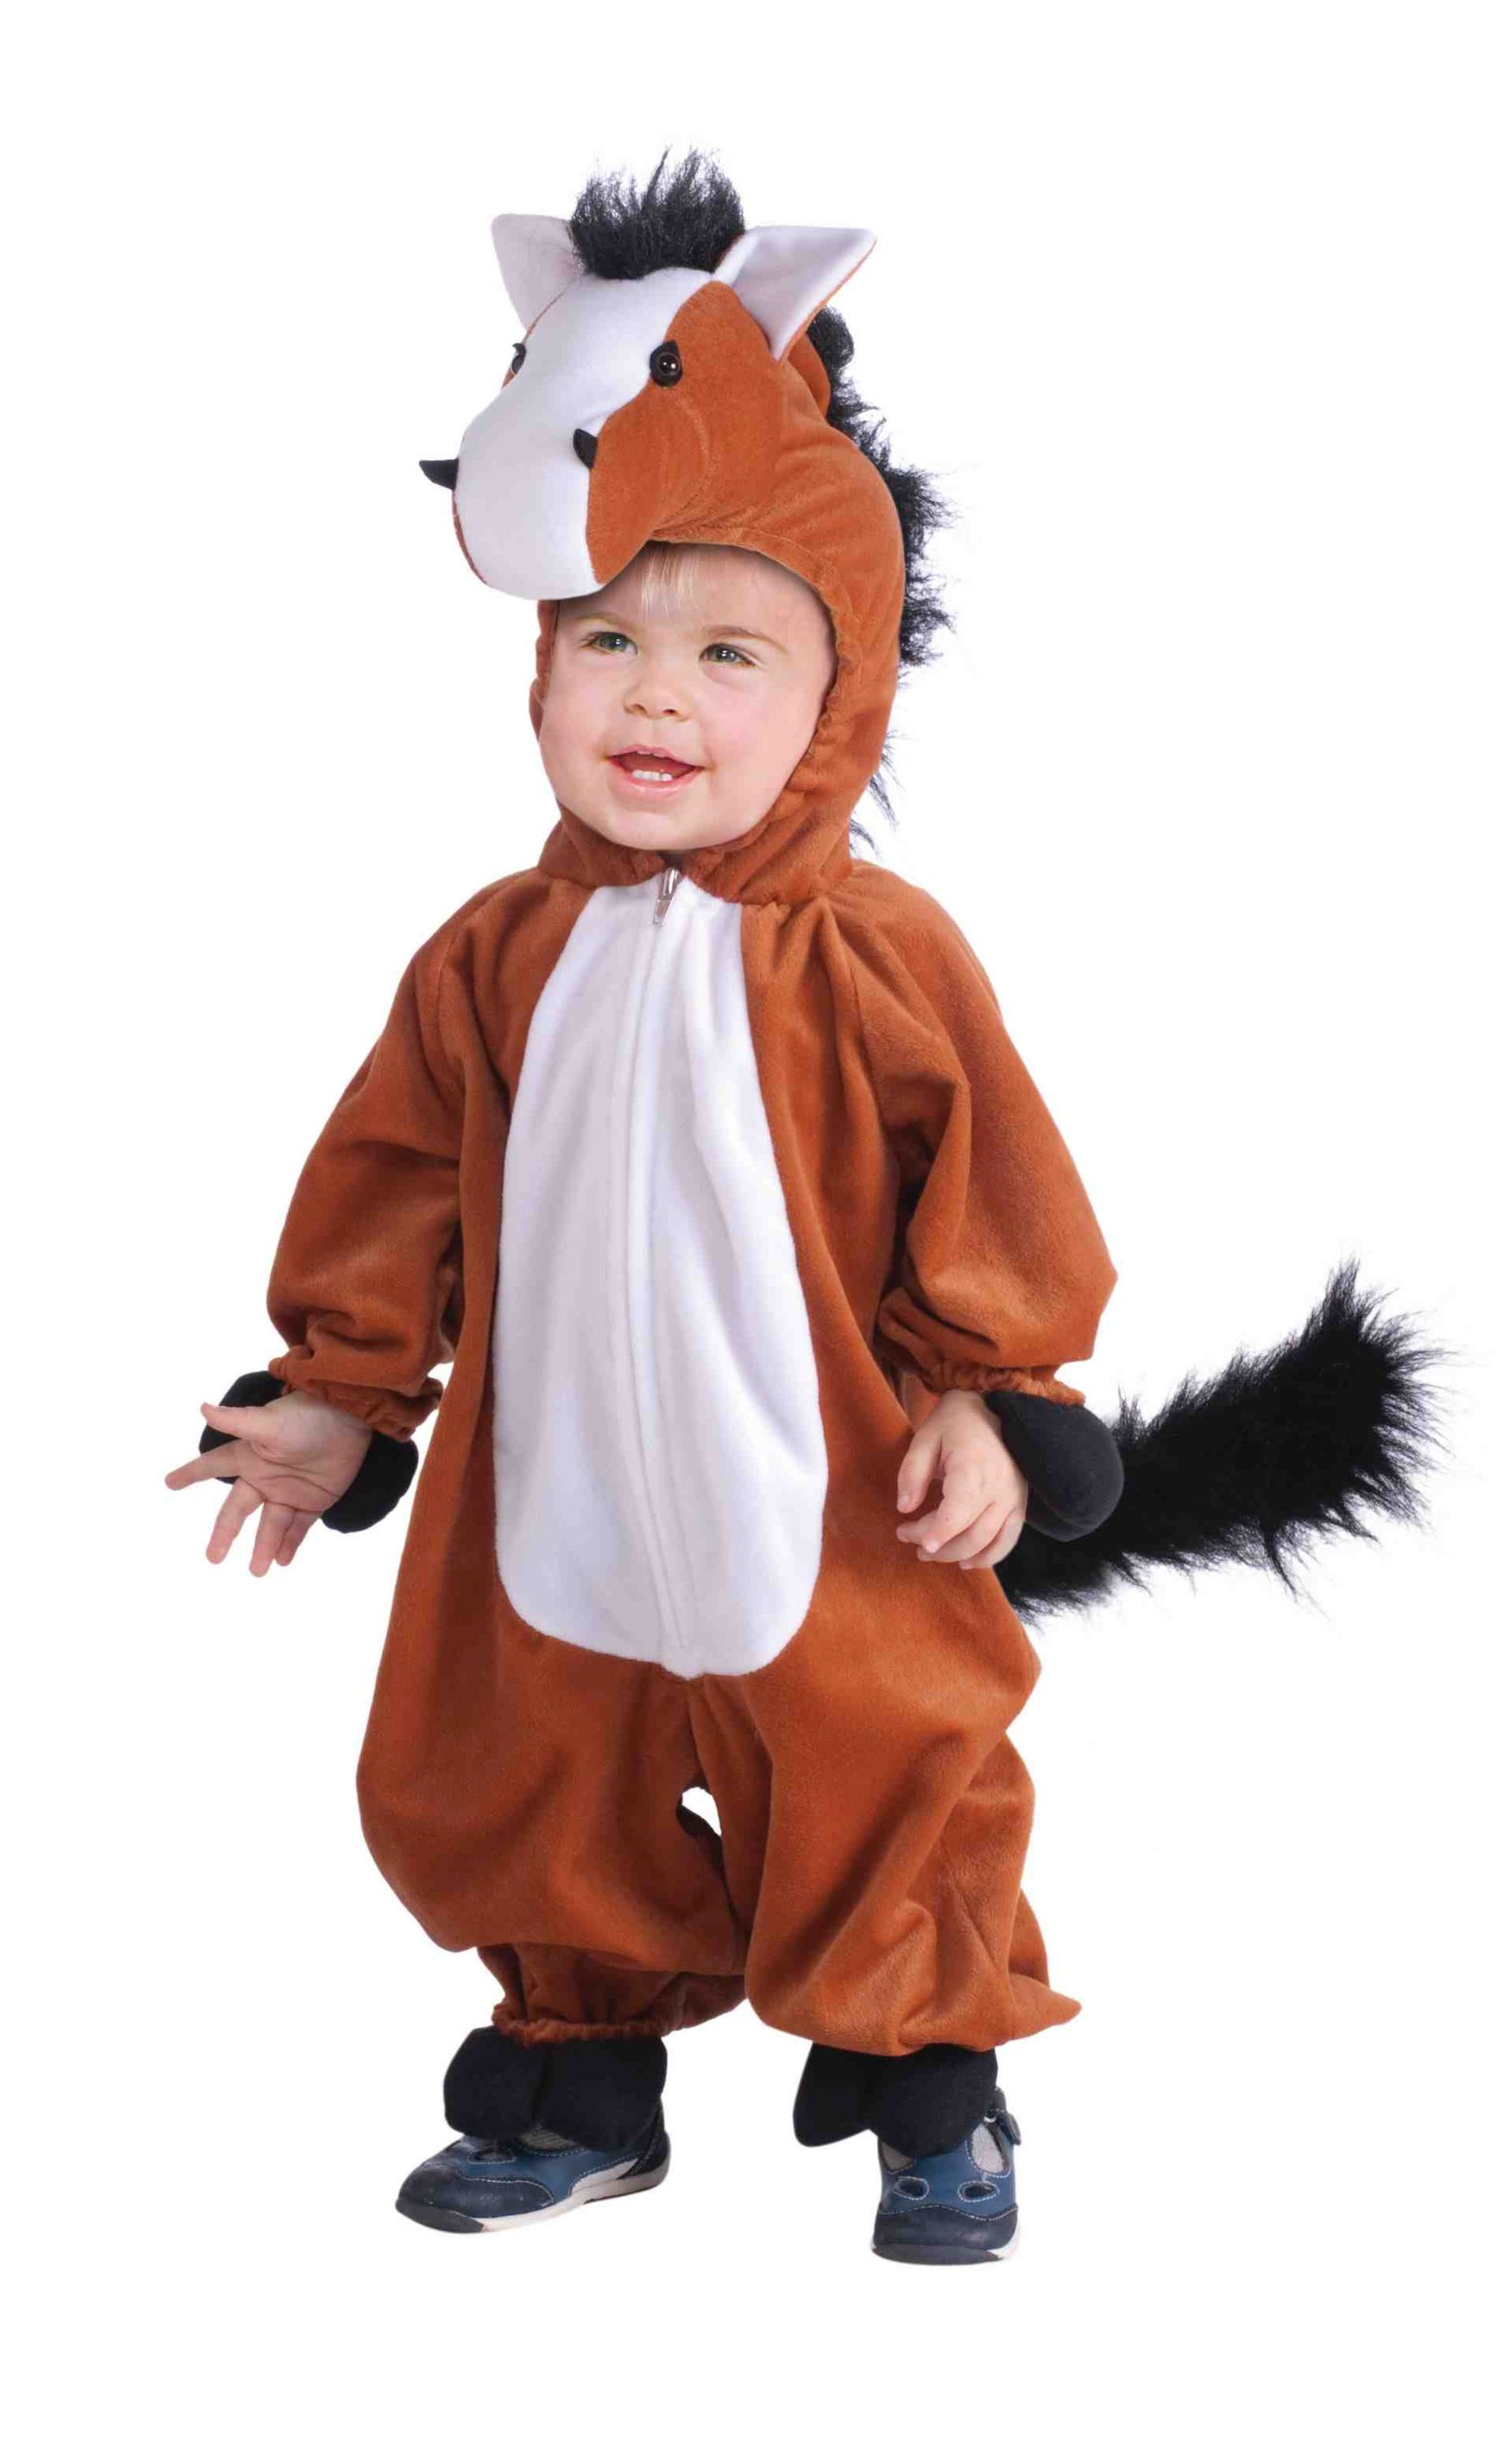 Forum Novelties Horse Costume - Includes a Jumpsuit with Attached Hood - Small Size